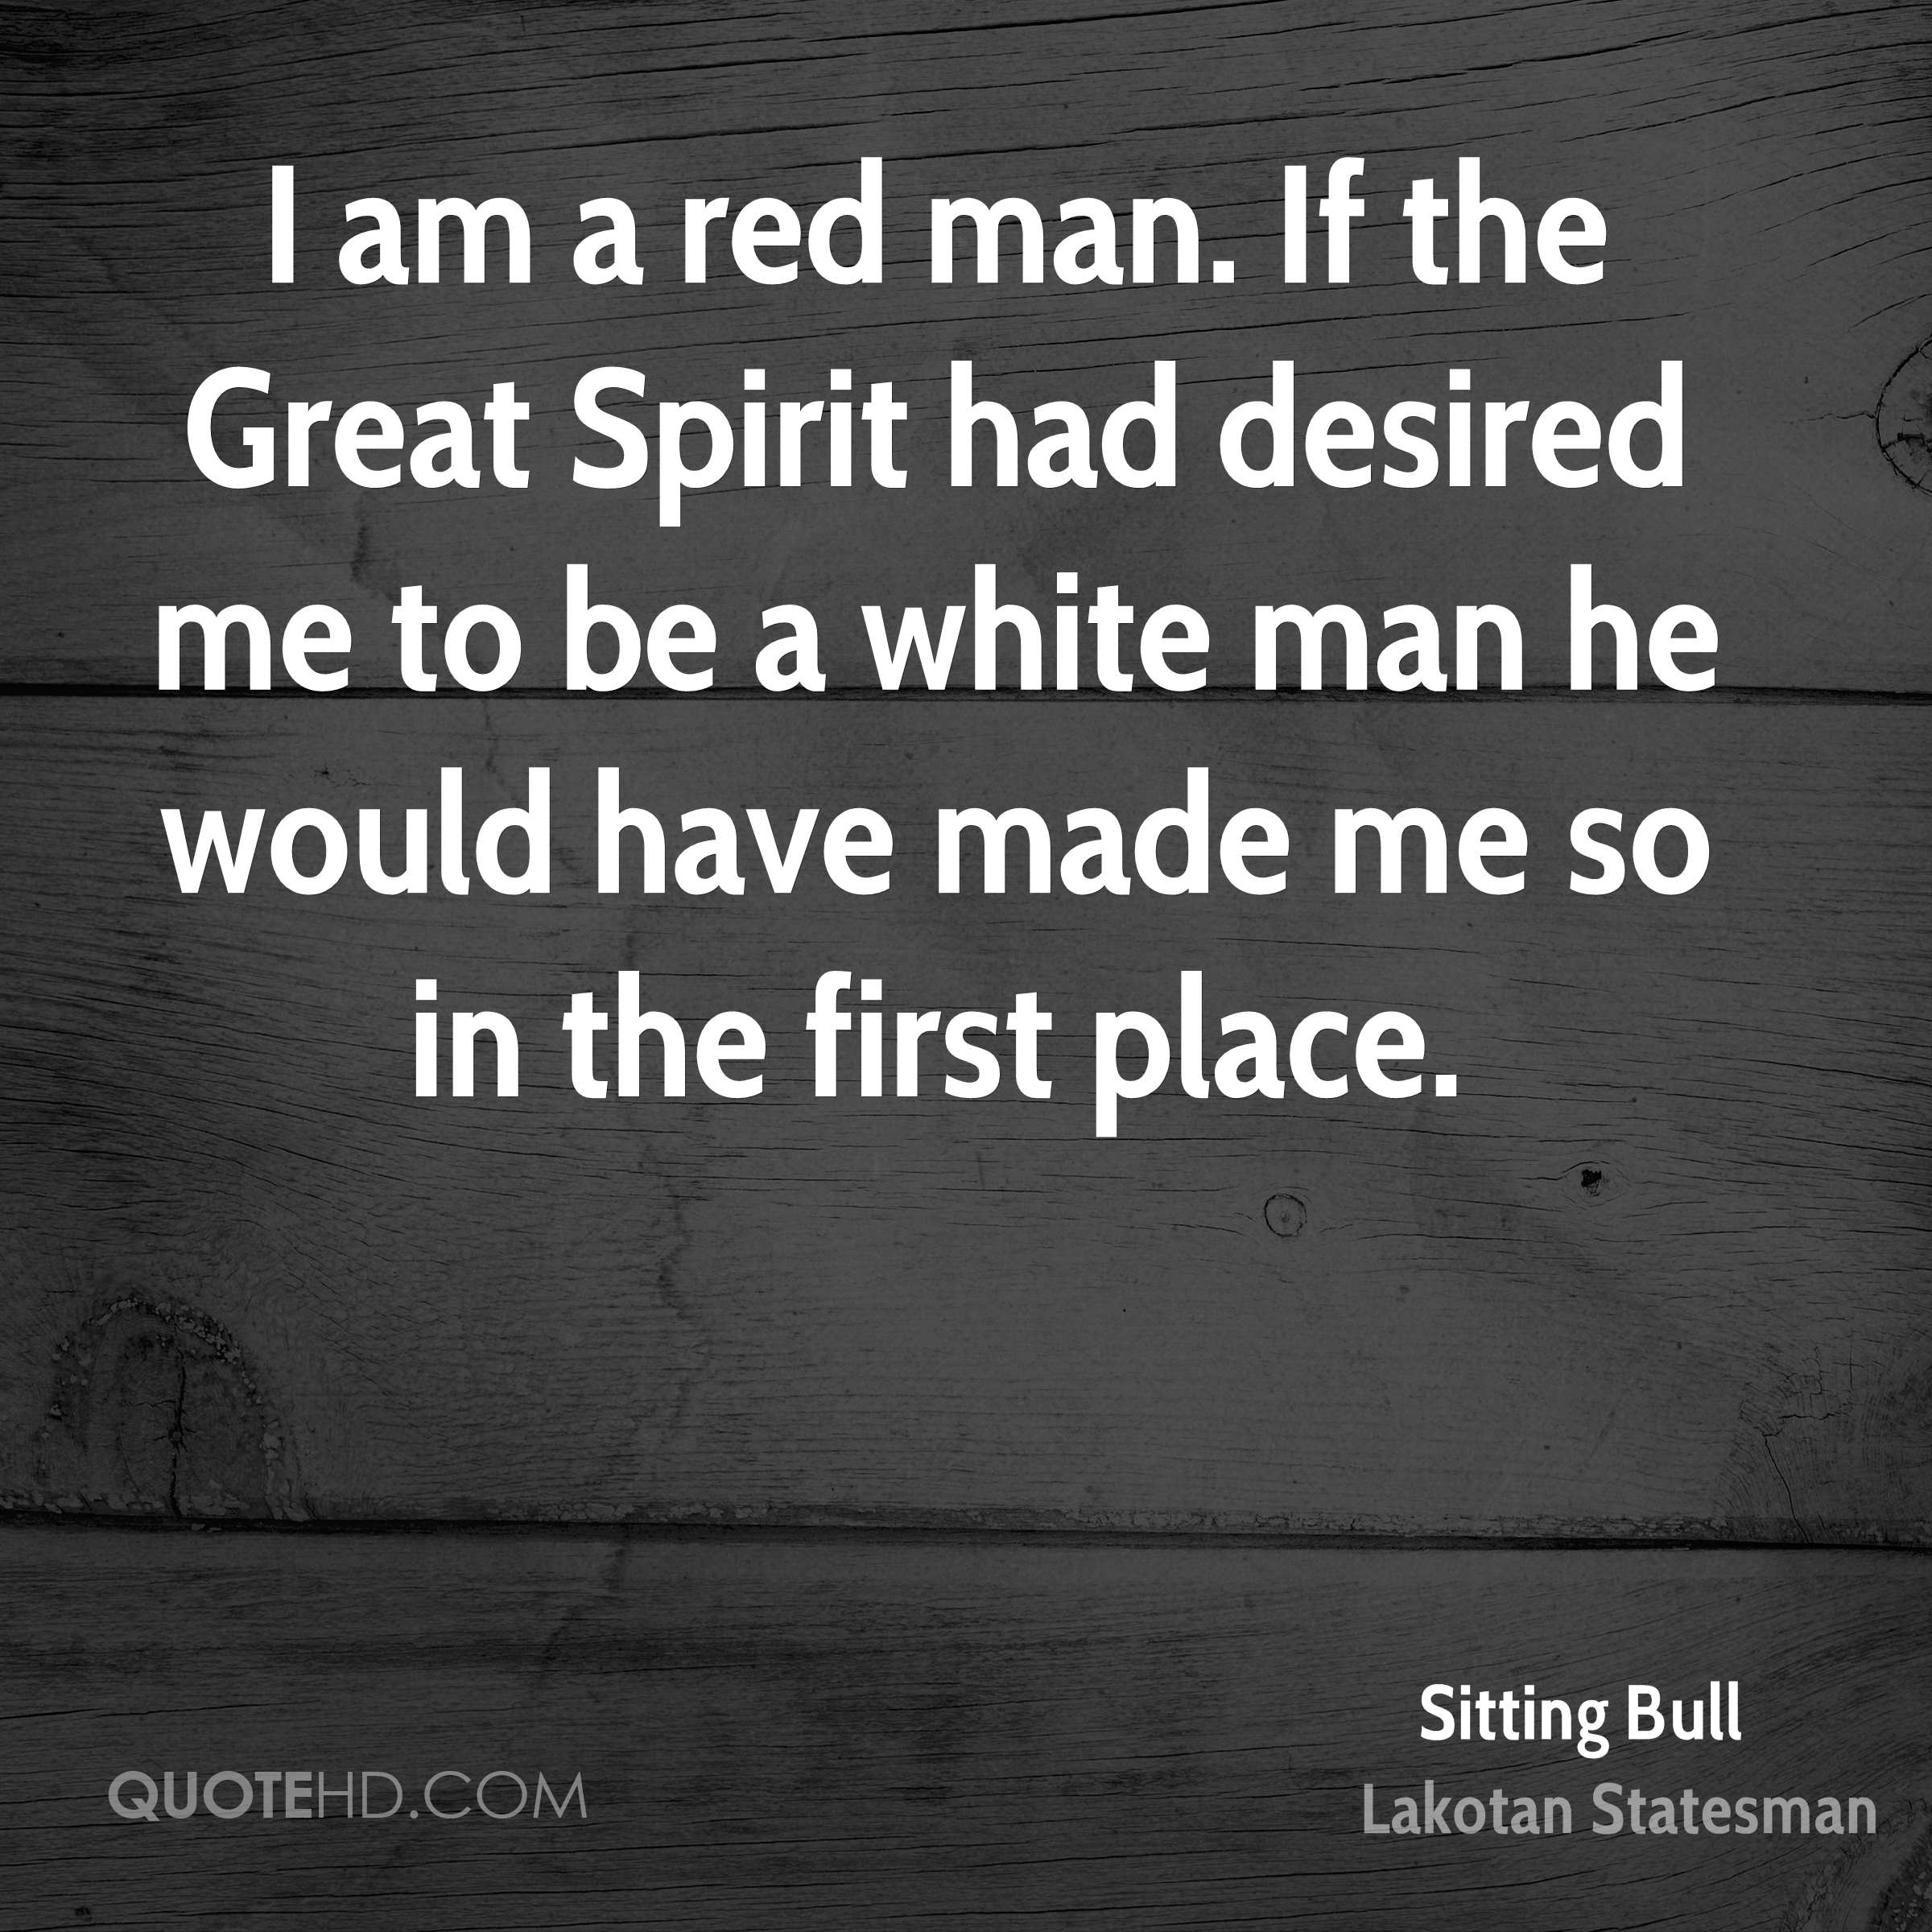 Great Spiritual Quotes About Life Sitting Bull Quotes  Quotehd